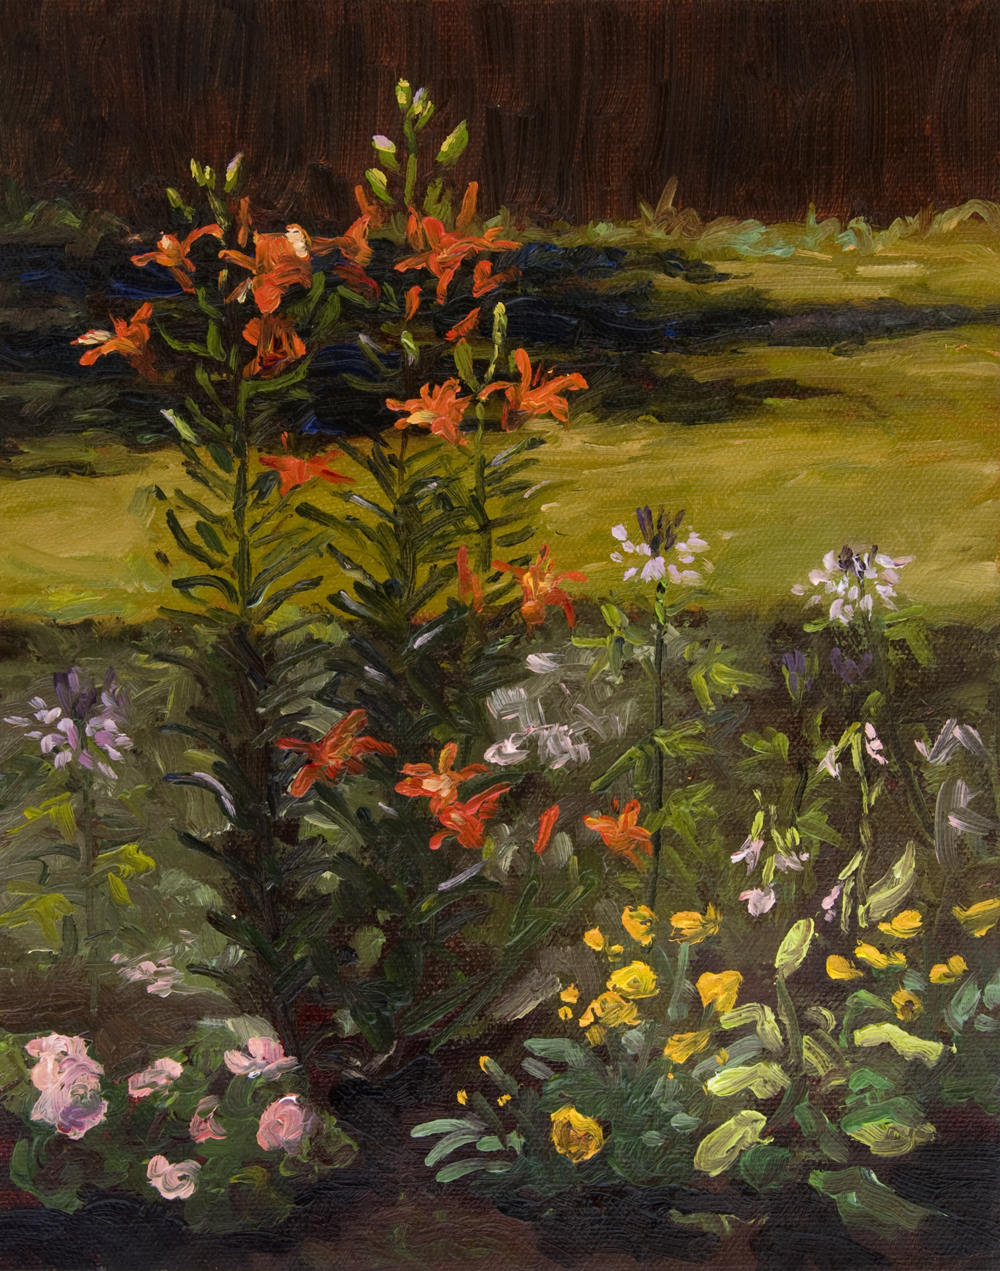 20140620-044-lilies-and-cleome-10x8.jpg